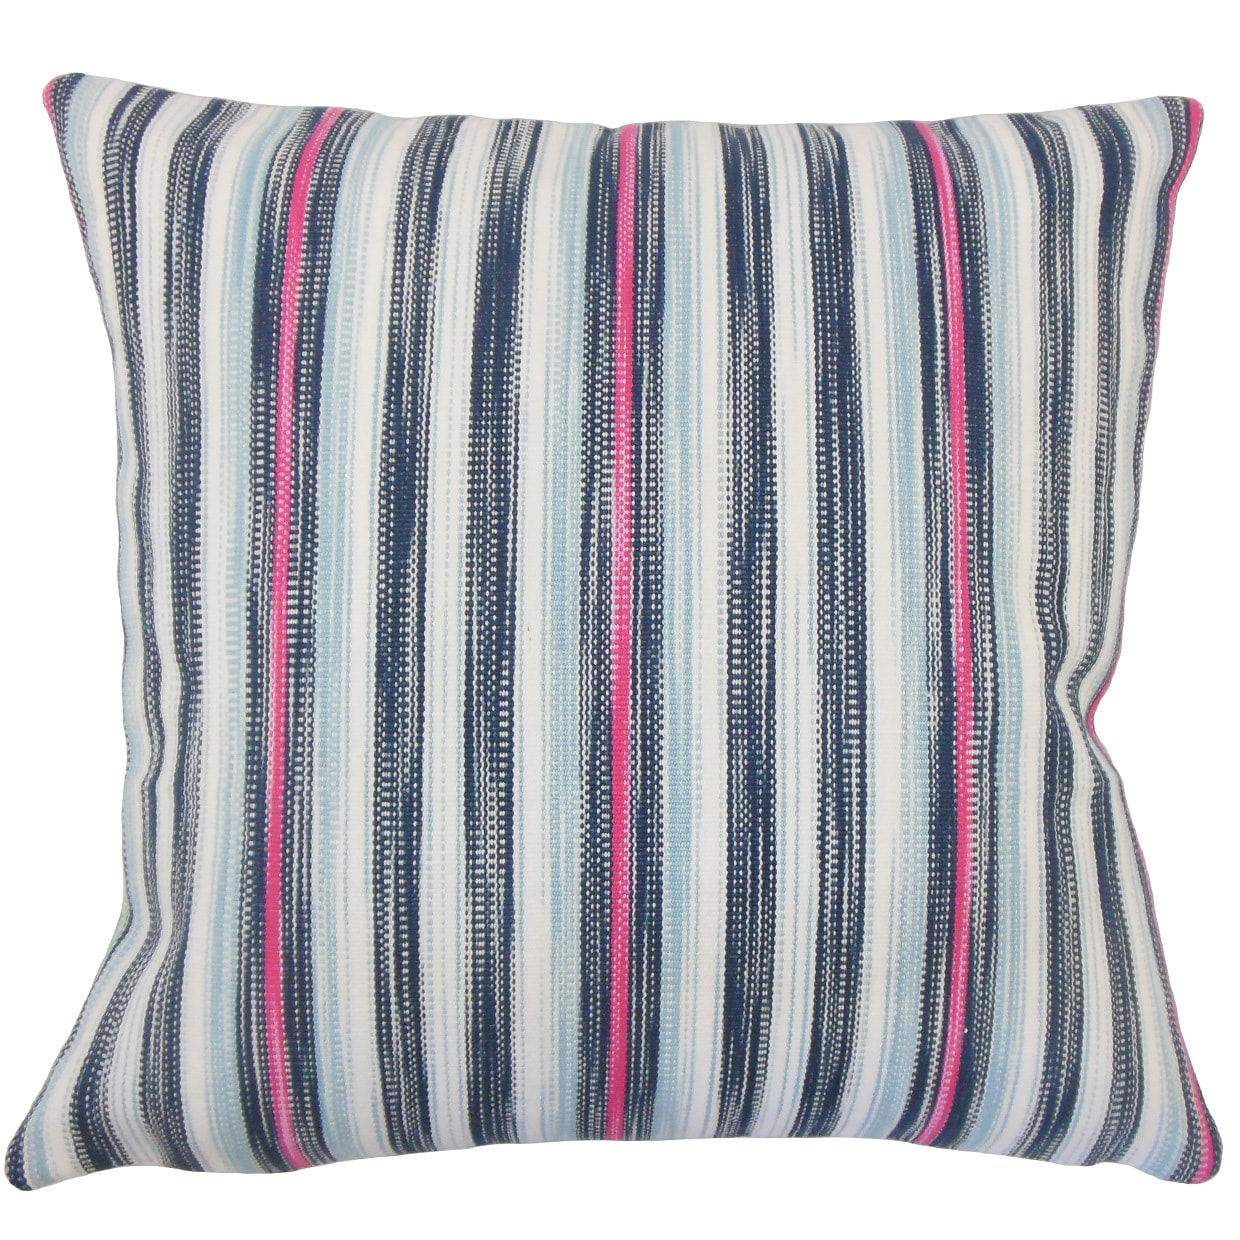 The Pillow Collection Eliora Striped 24-inch Down Feather Throw Pillow - Blue